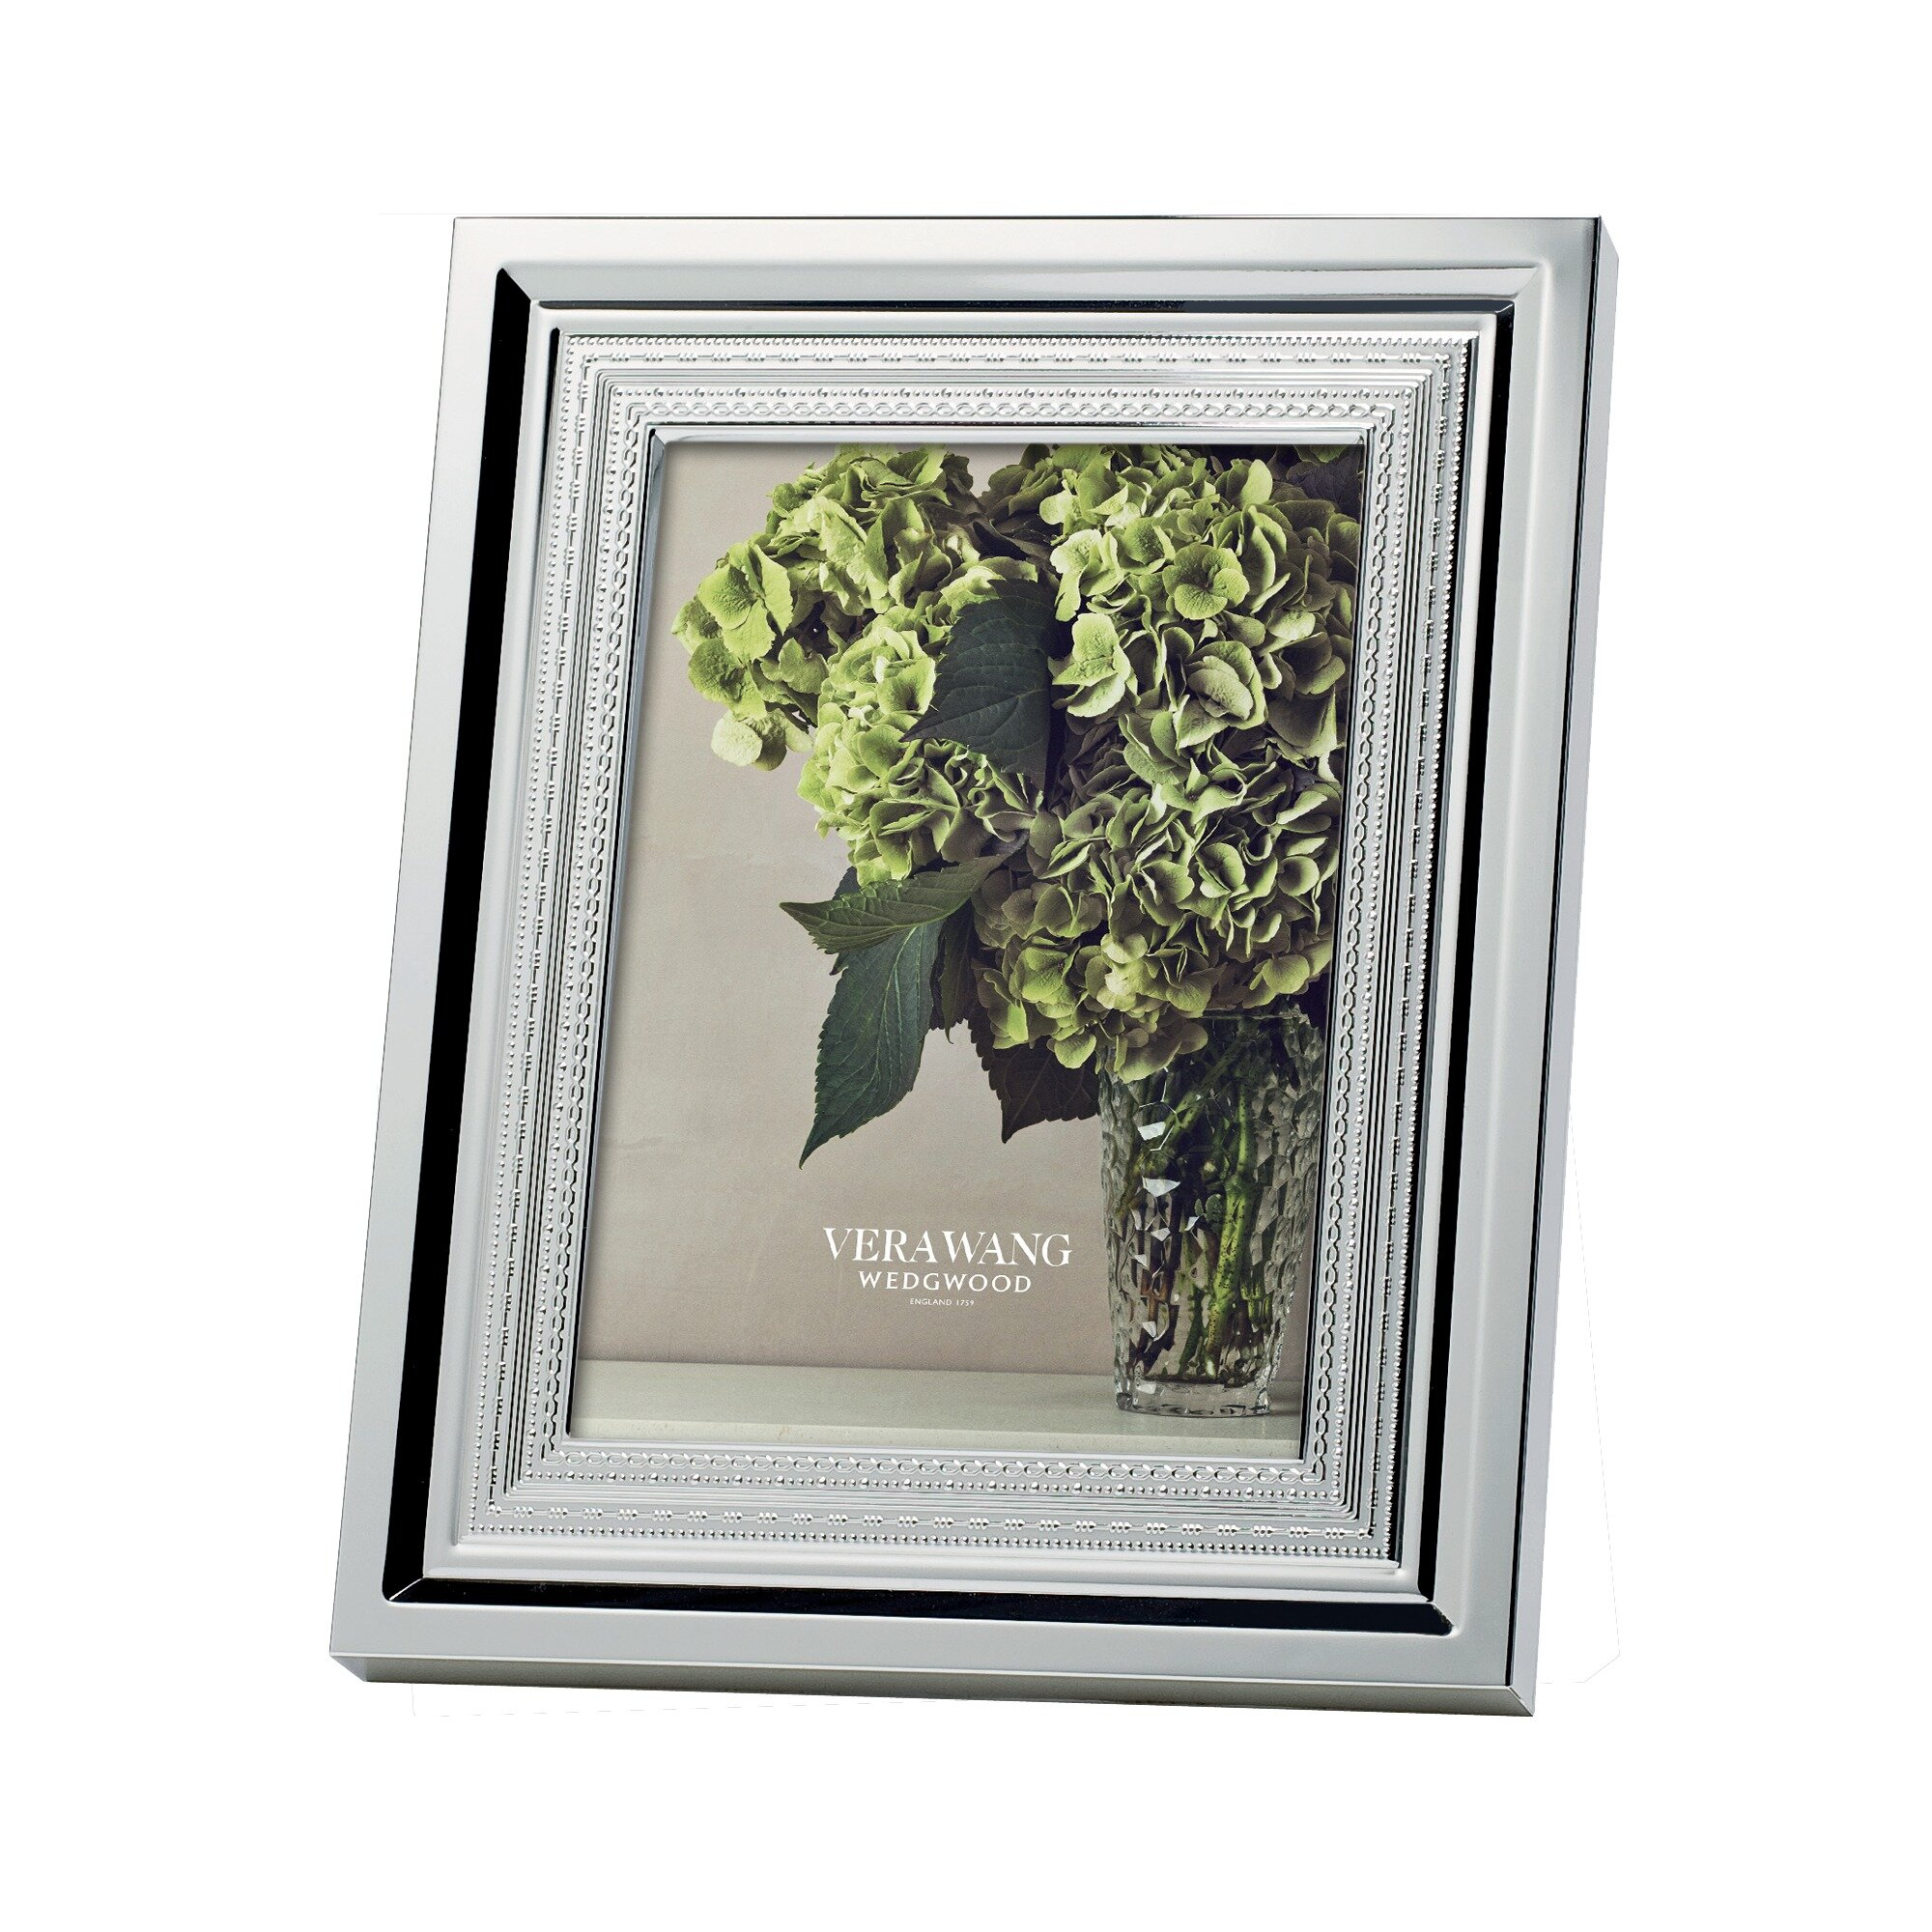 Vera Wang Picture Frames You Ll Love In 2021 Wayfair